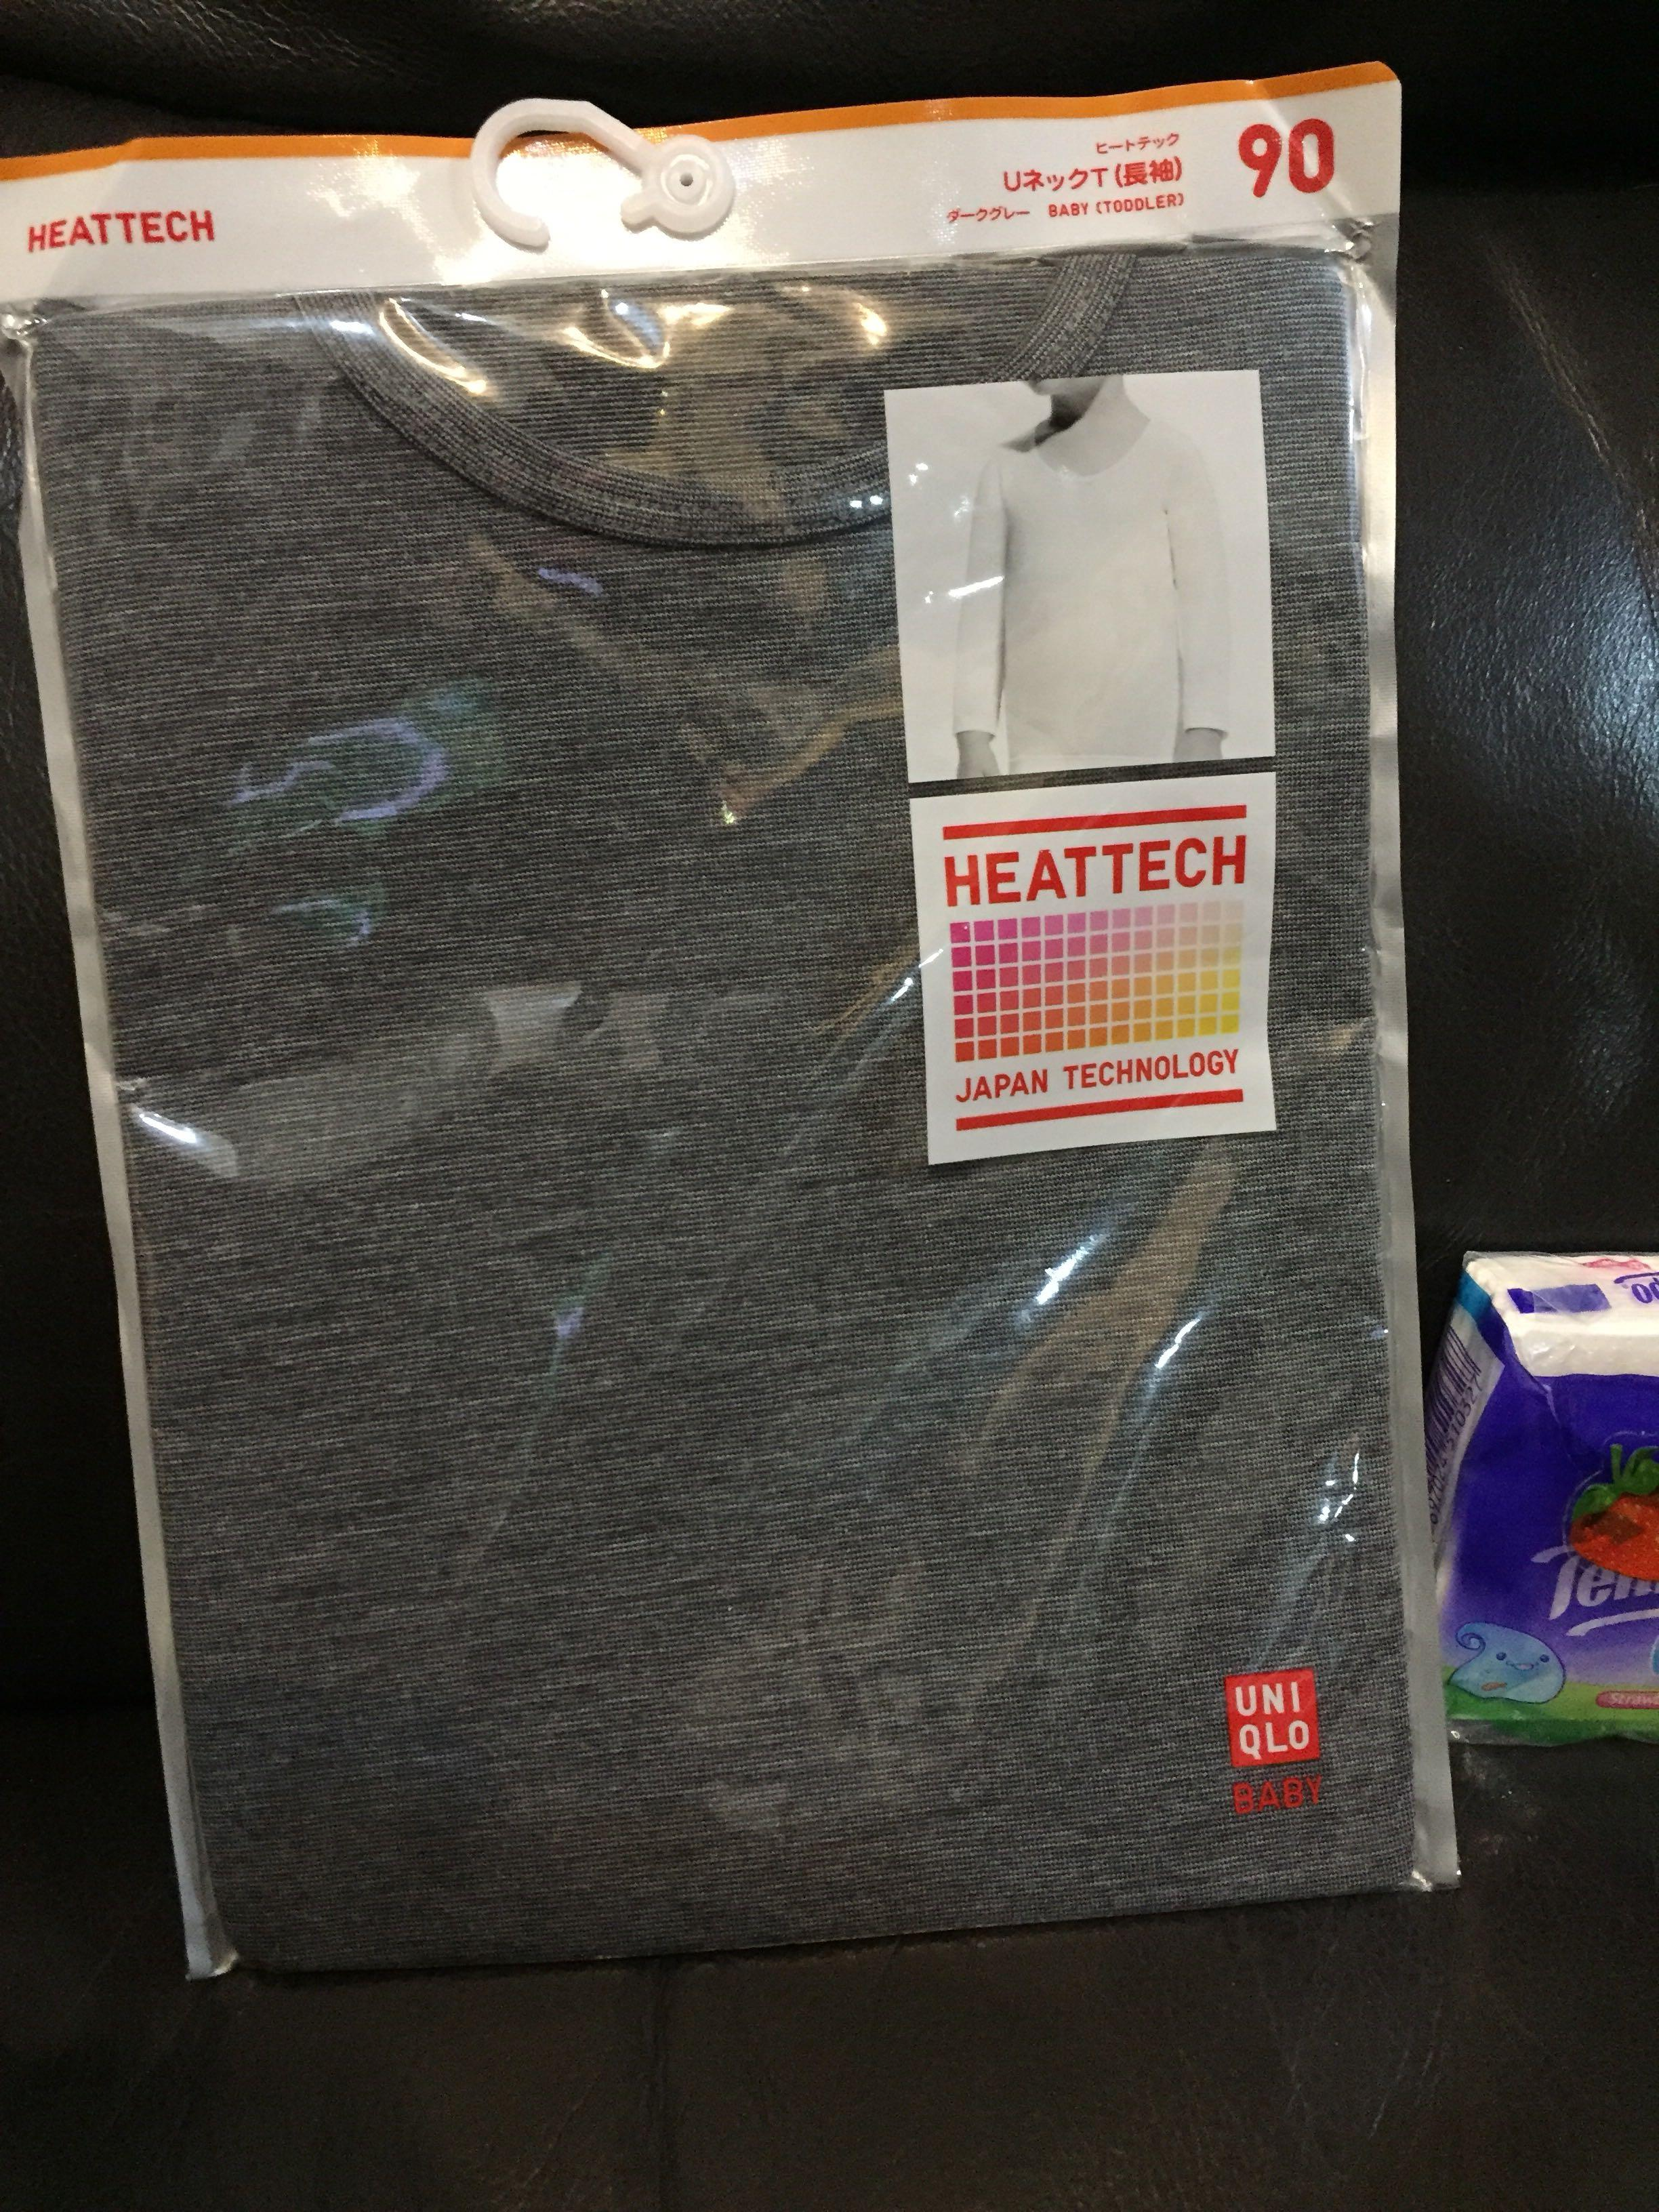 Uniqlo Heattech 90 購自日本